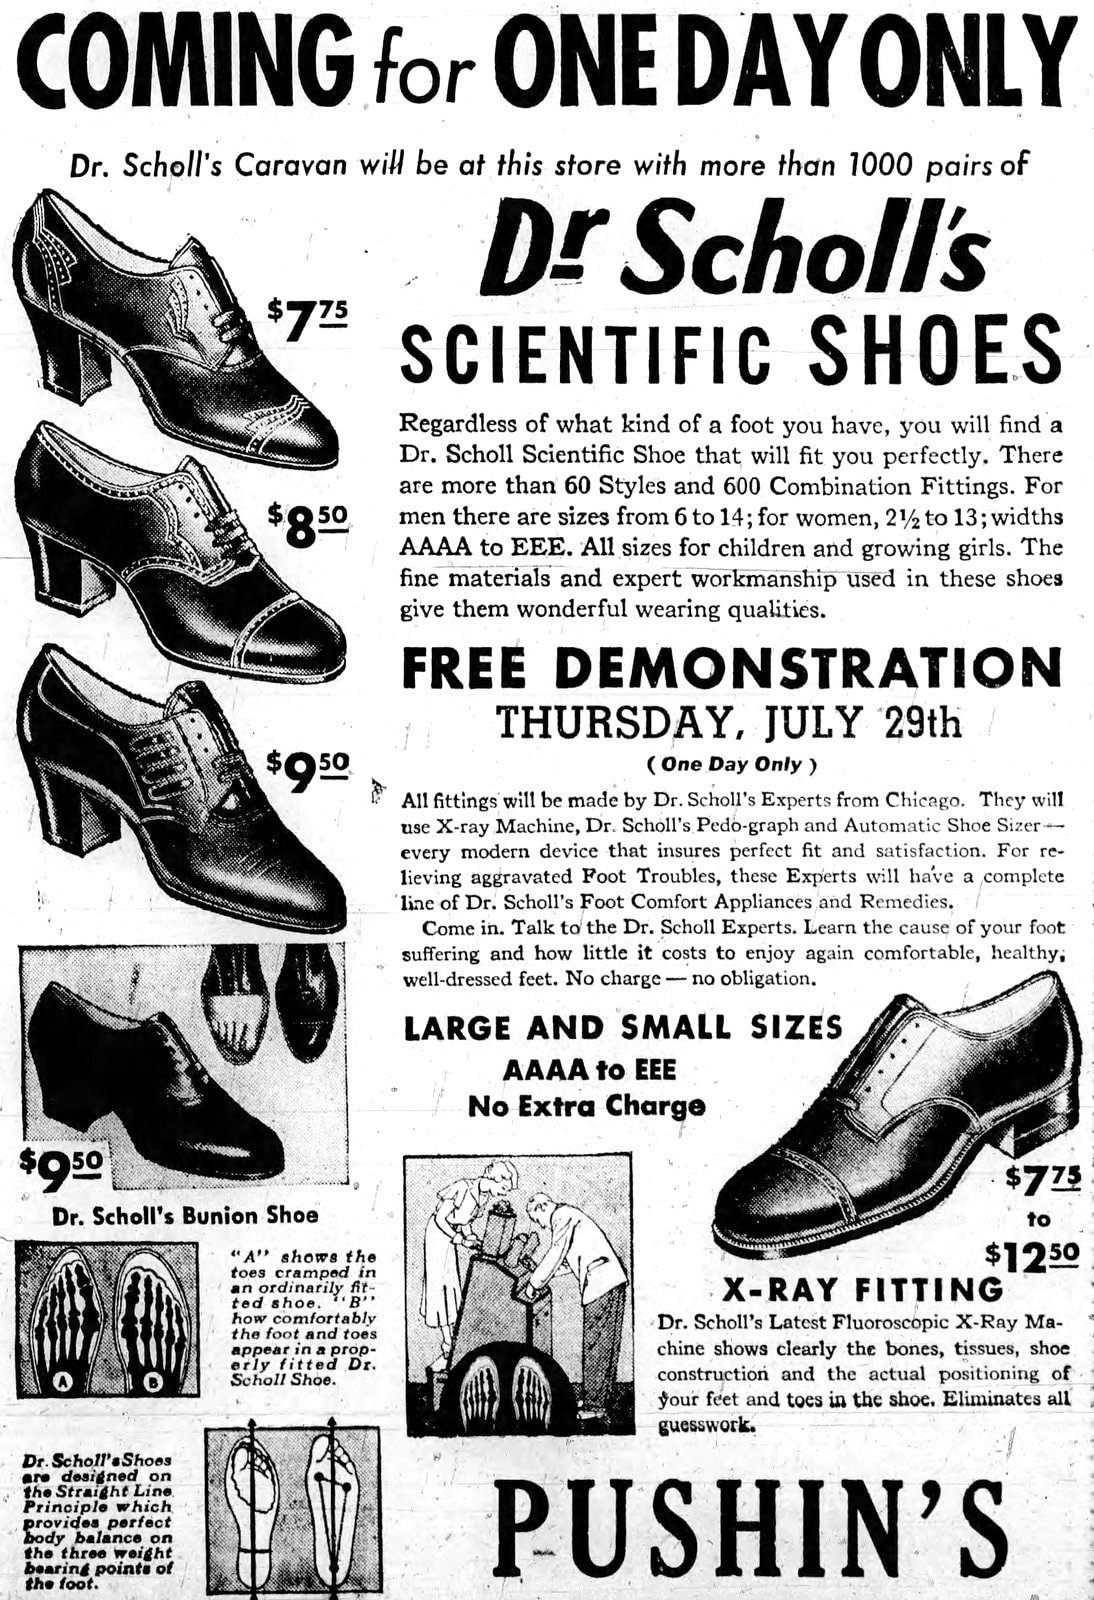 Dr. Scholl's scientific shoes with X-Ray technology (1937)